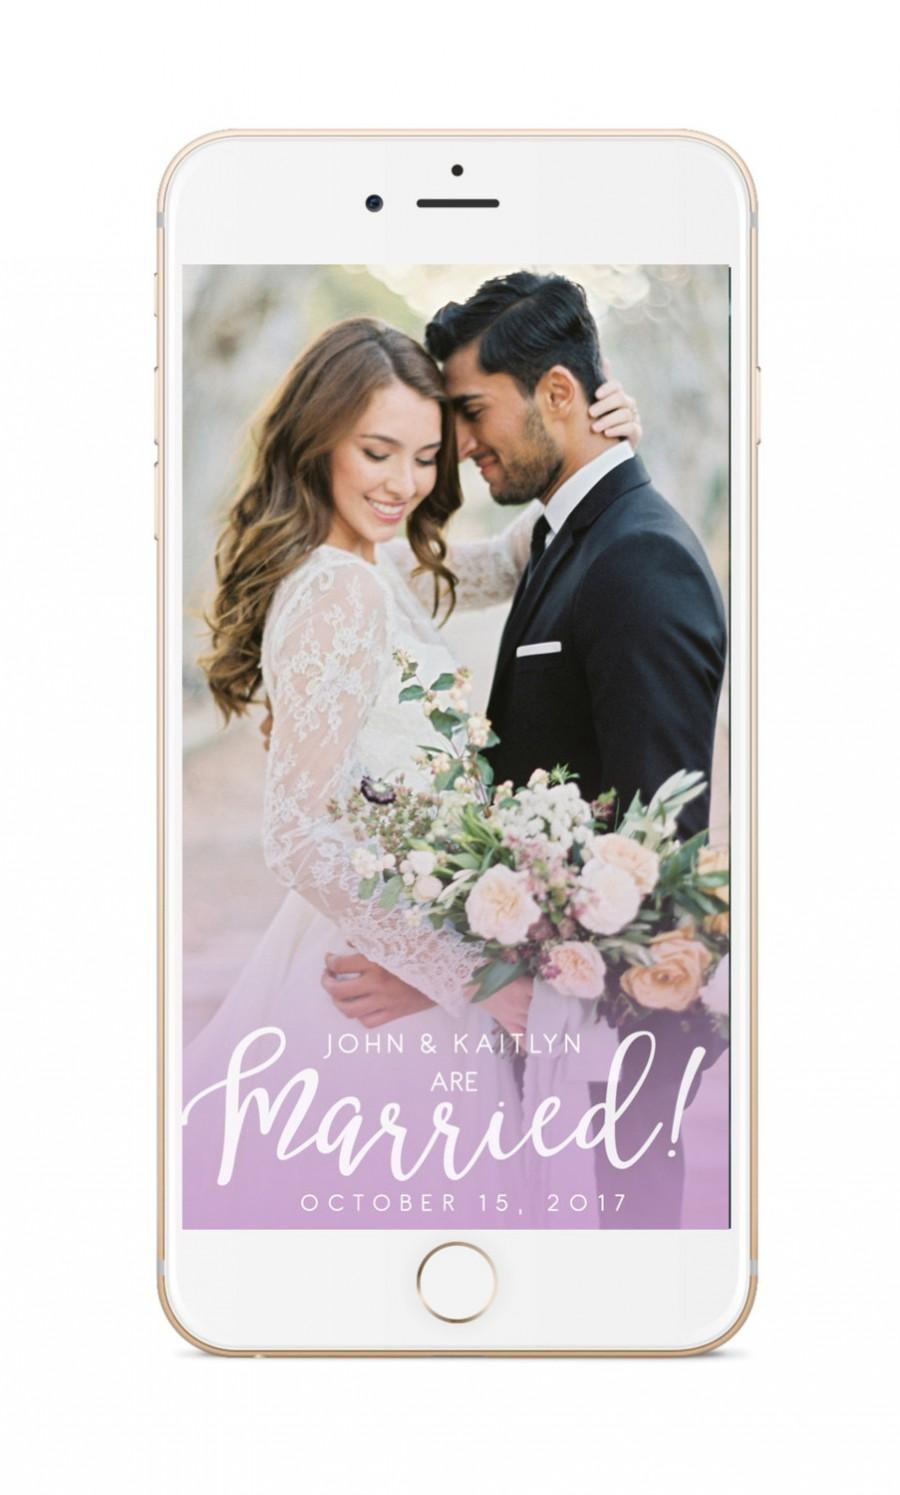 Свадьба - Snapchat Geofilter Wedding: Custom Geofilter, Snapchat Geofilter, Personalized Geofilter, Wedding Snapchat Filter, Custom Wedding, gift, 006